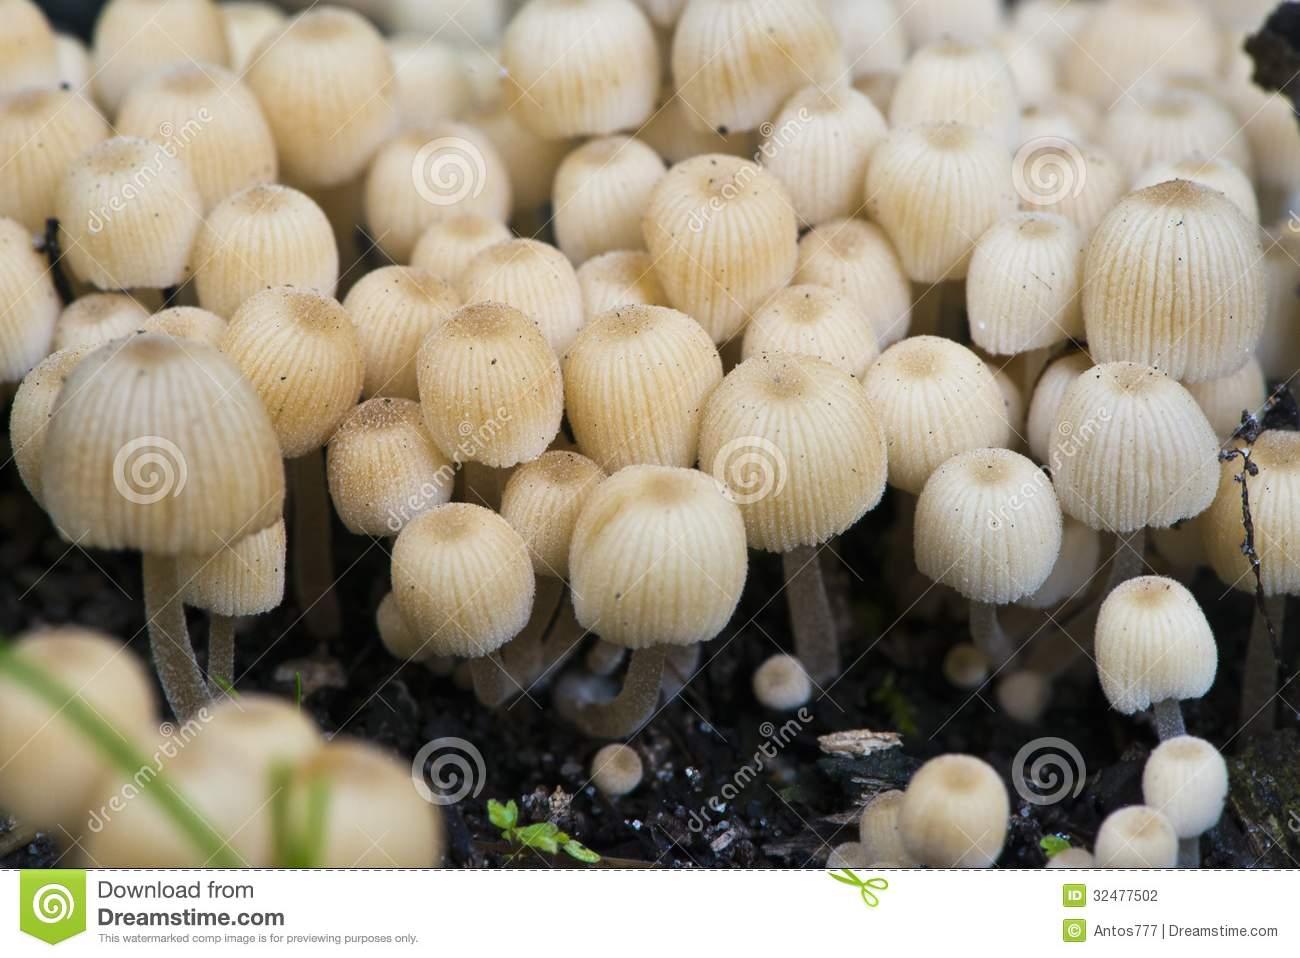 Download Mushrooms stock photo. Image of eating, head, close, food - 32477502